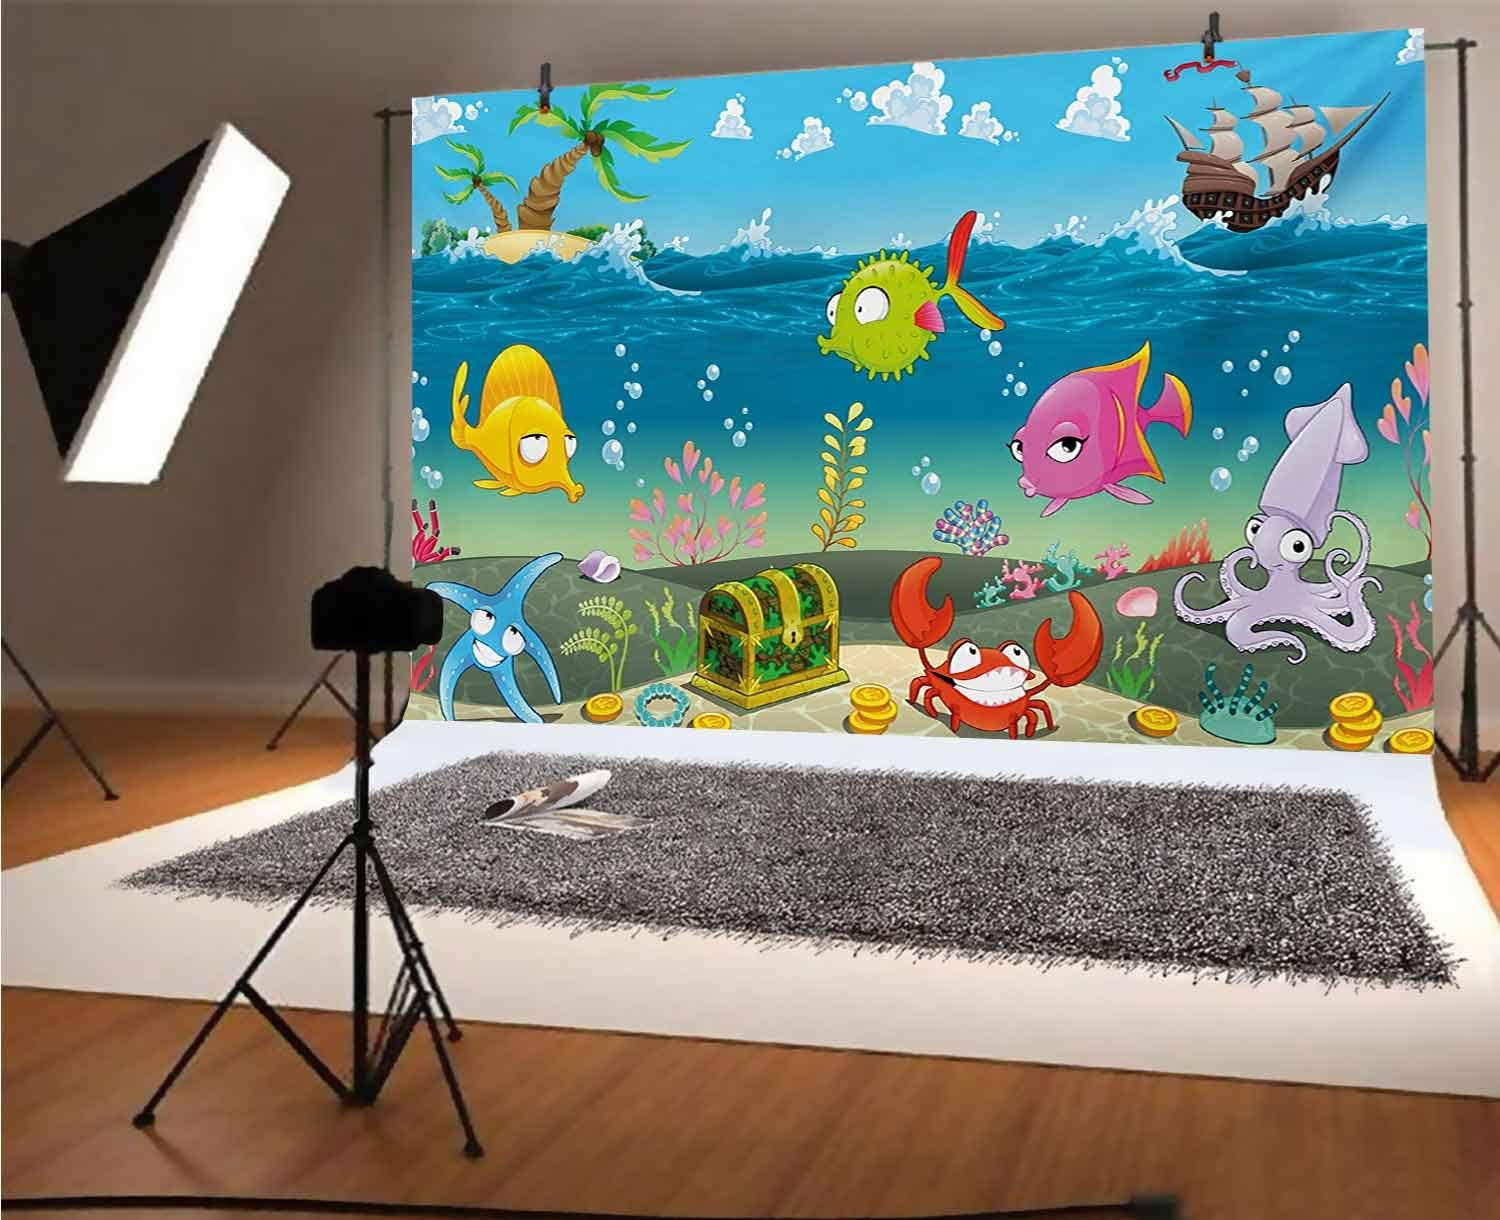 Peach 8x6 FT Vinyl Photo Backdrops,Fishes Motif Nautical Marine Sea Underwater Creature Animal Aquarium Ornate Forms Background for Selfie Birthday Party Pictures Photo Booth Shoot